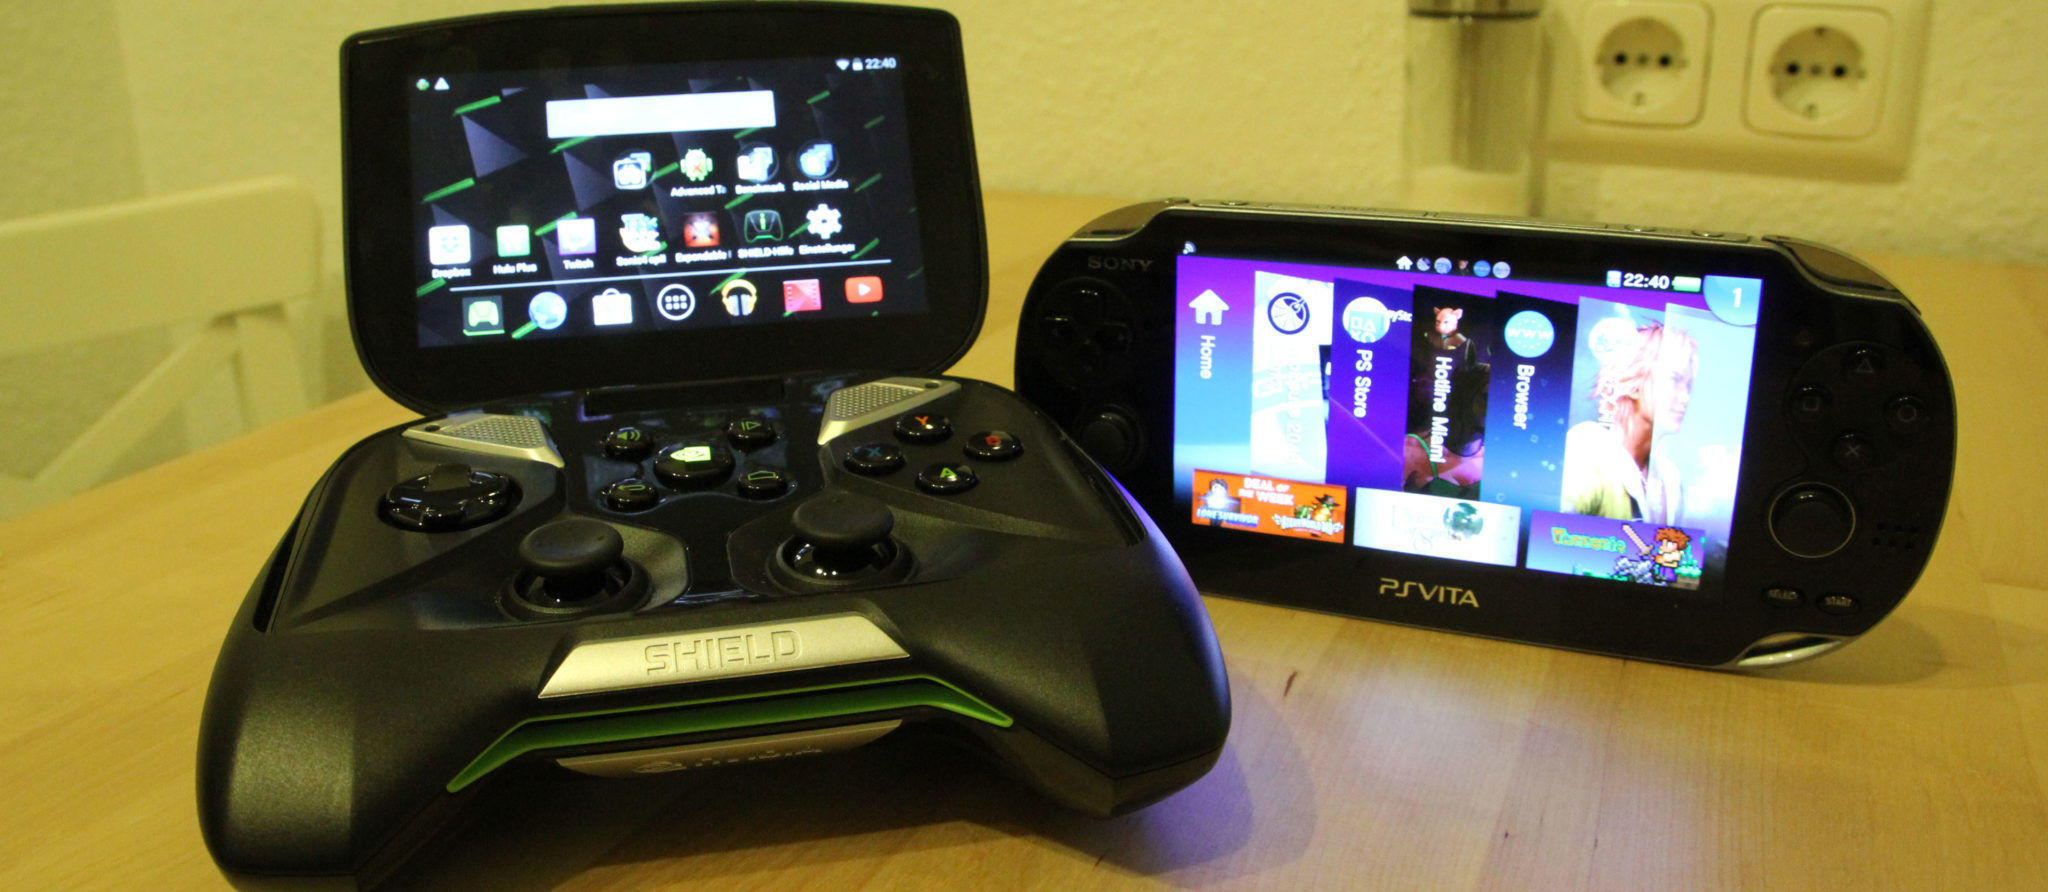 nvidia-shield-ps-vita